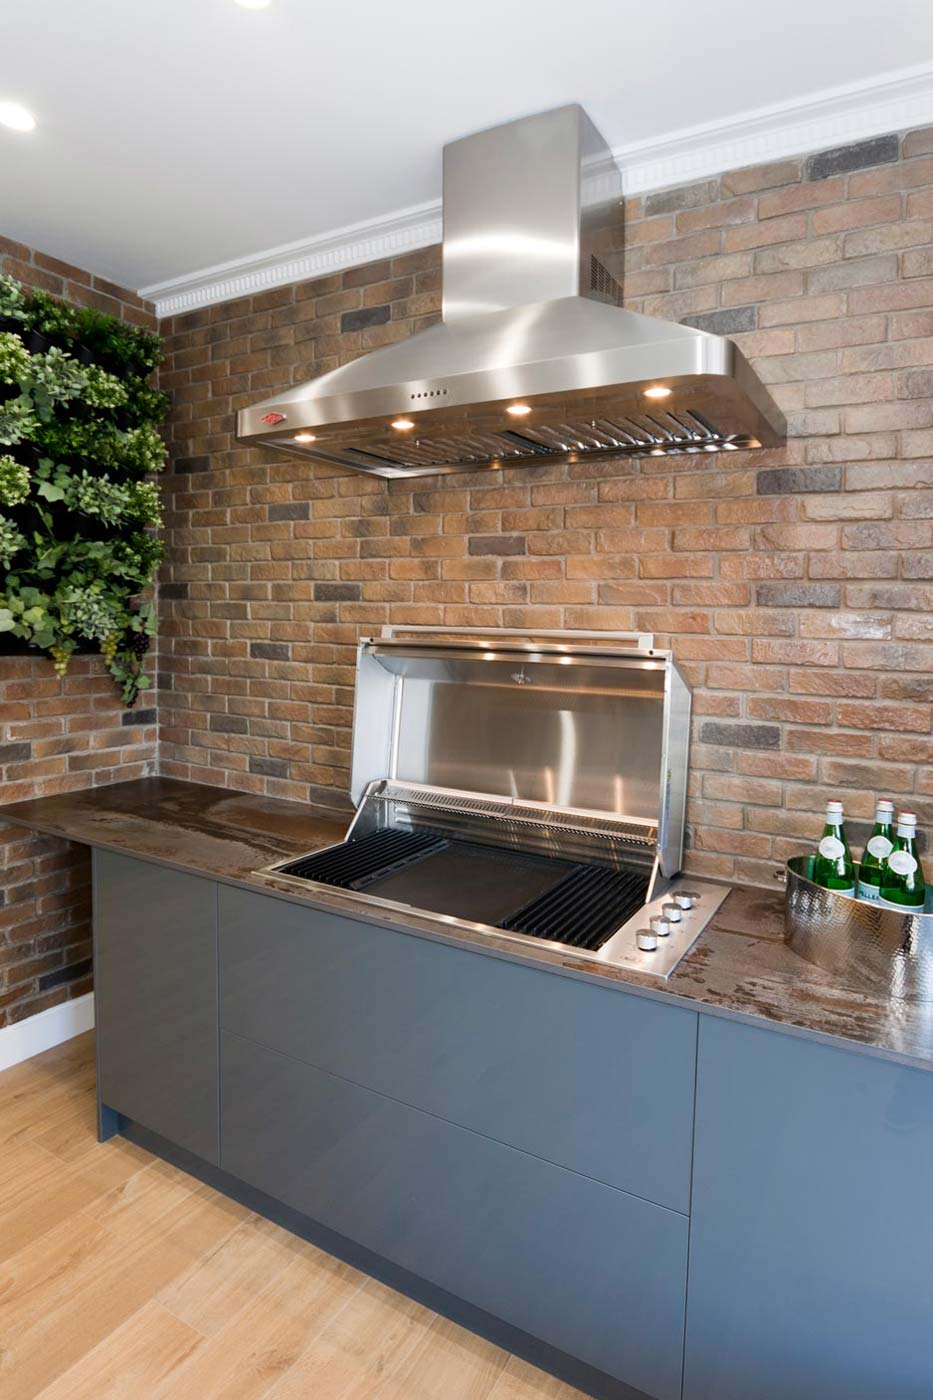 Outdoor kitchen design BBQ with Neolith benchtop and canopy rangehood. On display at Premier Kitchens Showroom, 63 Penshurst St, Willoughby.